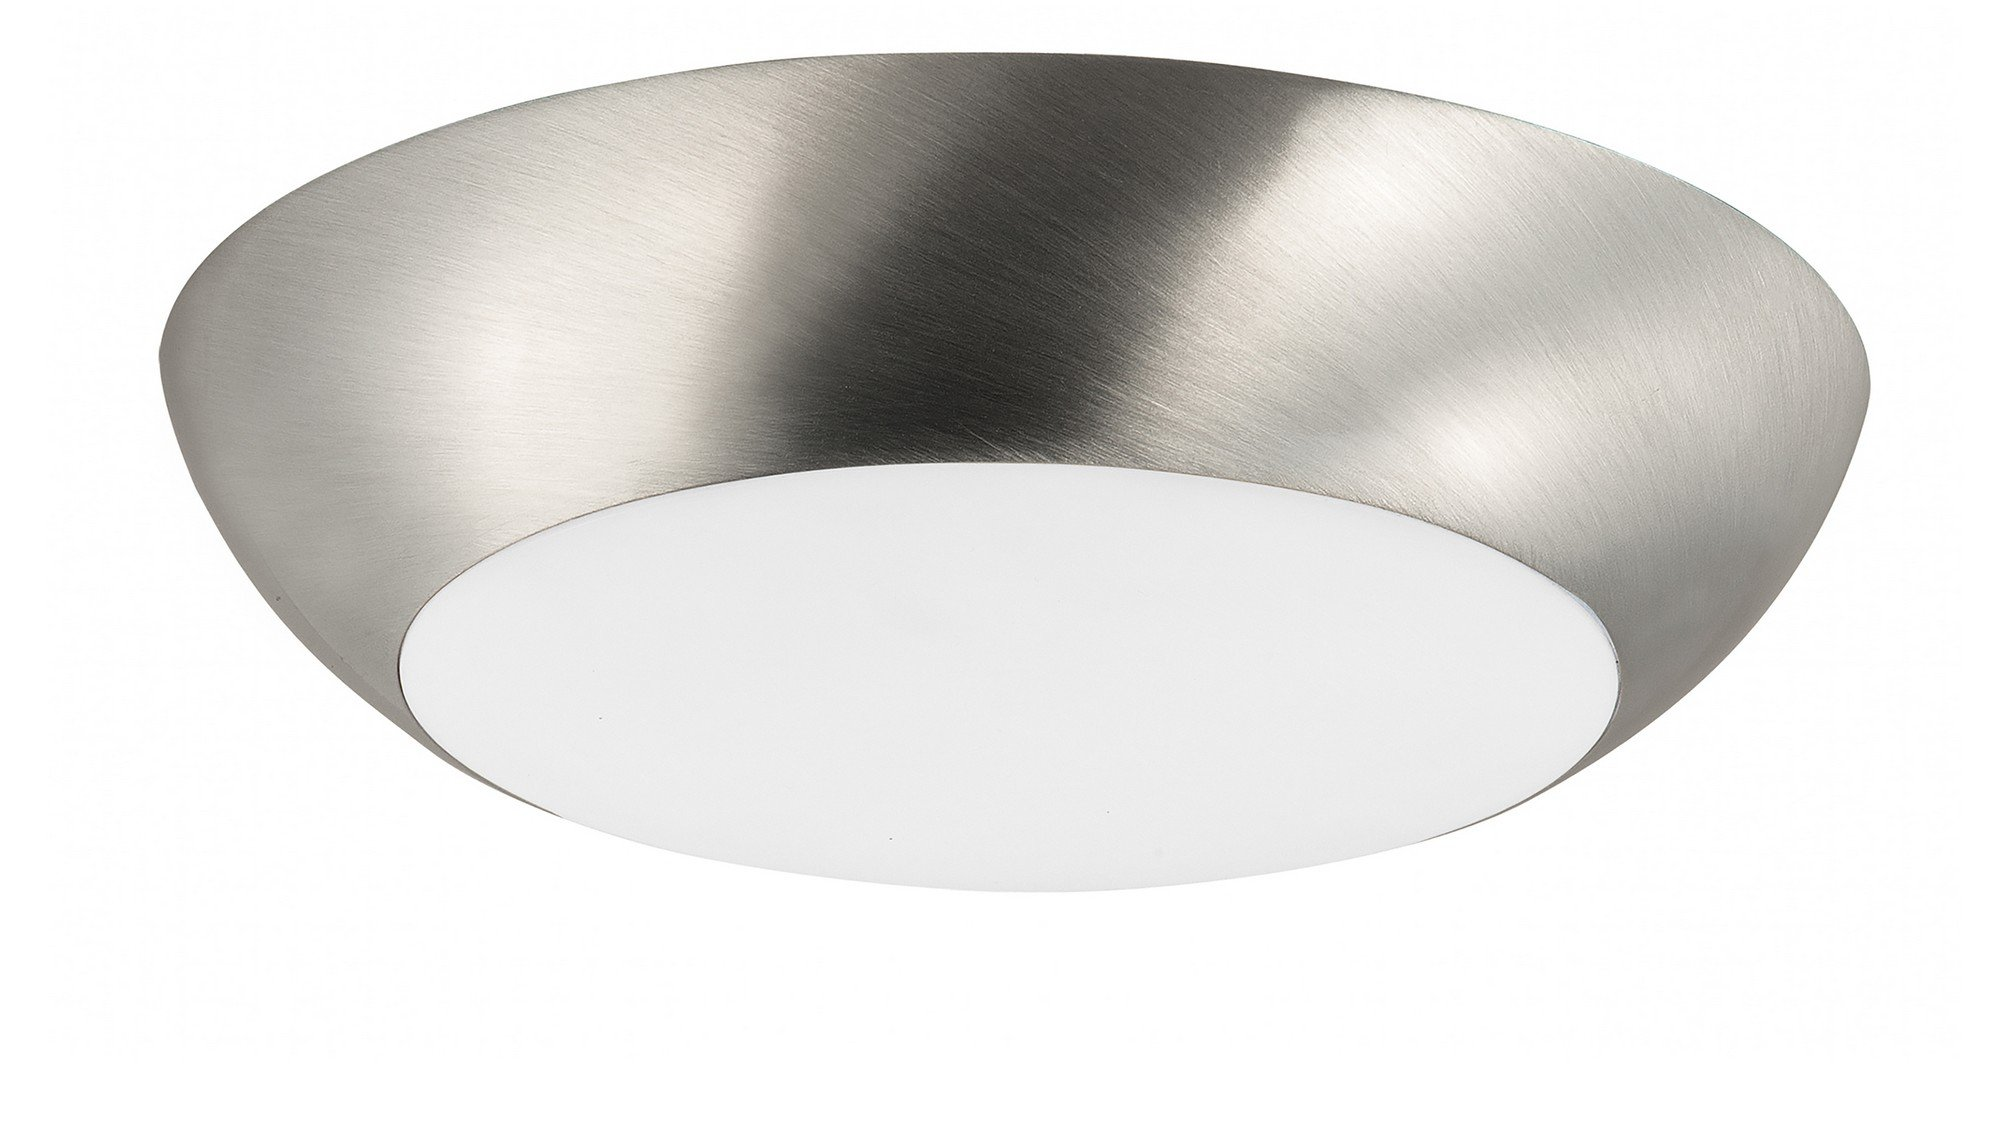 Maxim 87612WTSN Diverse LED Flush Mount, Satin Nickel Finish, White Glass, PCB LED Bulb , 100W Max., Wet Safety Rating, Standard Dimmable, Shade Material, Rated Lumens